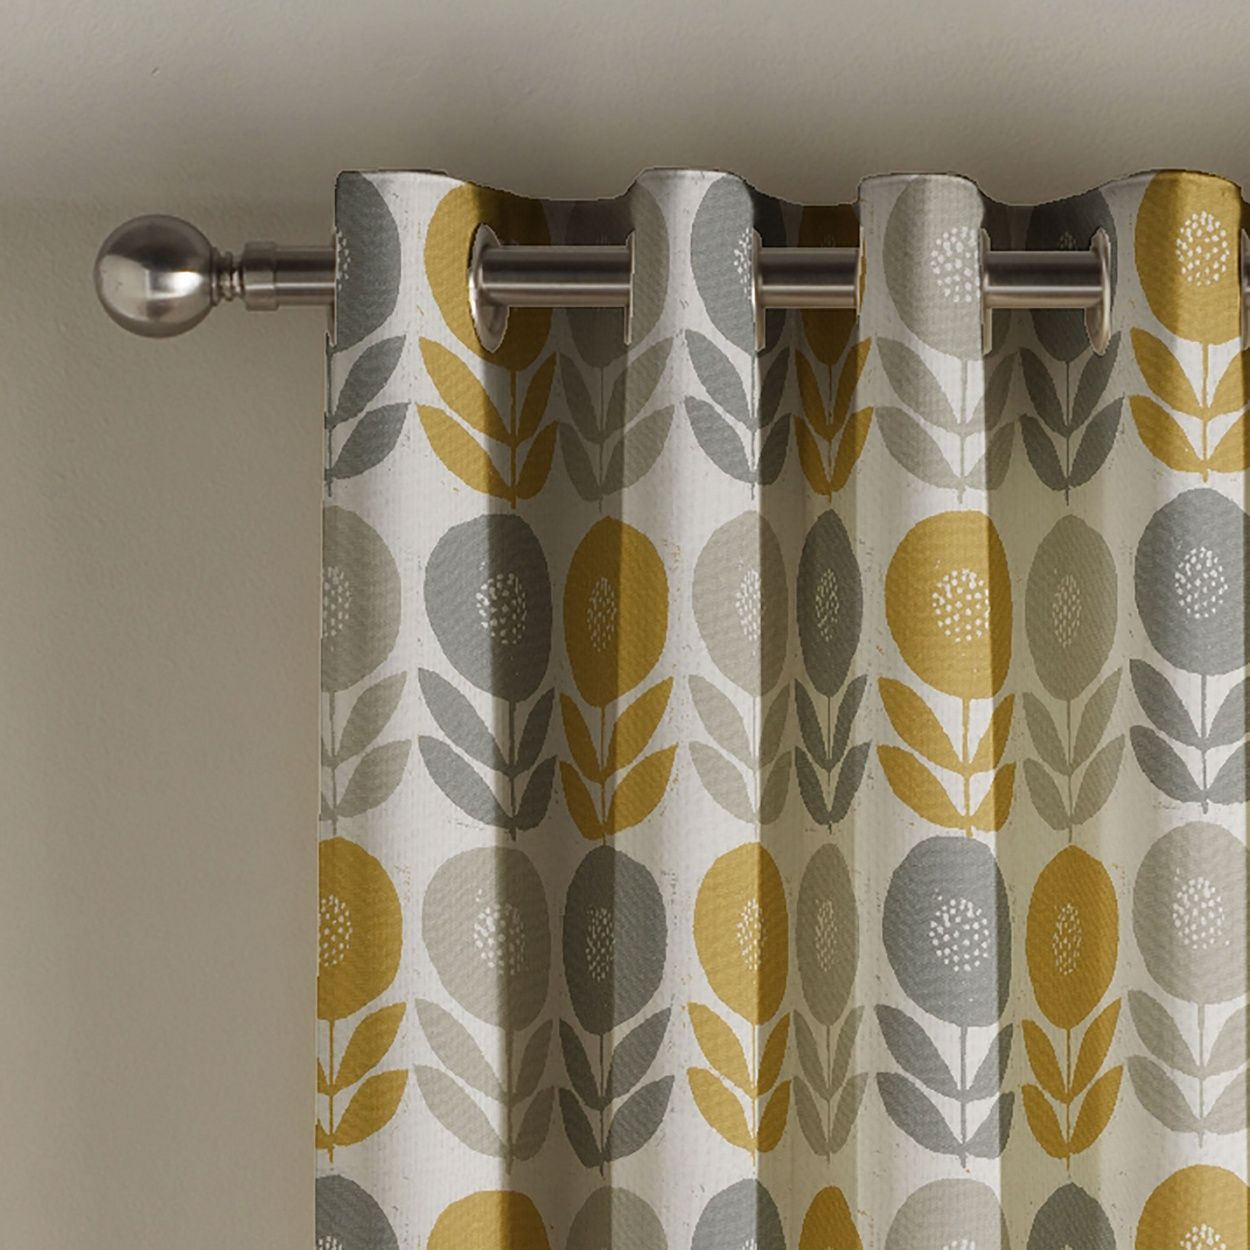 Captivating Mustard U0027Uppsalau0027 Lined Eyelet Curtains